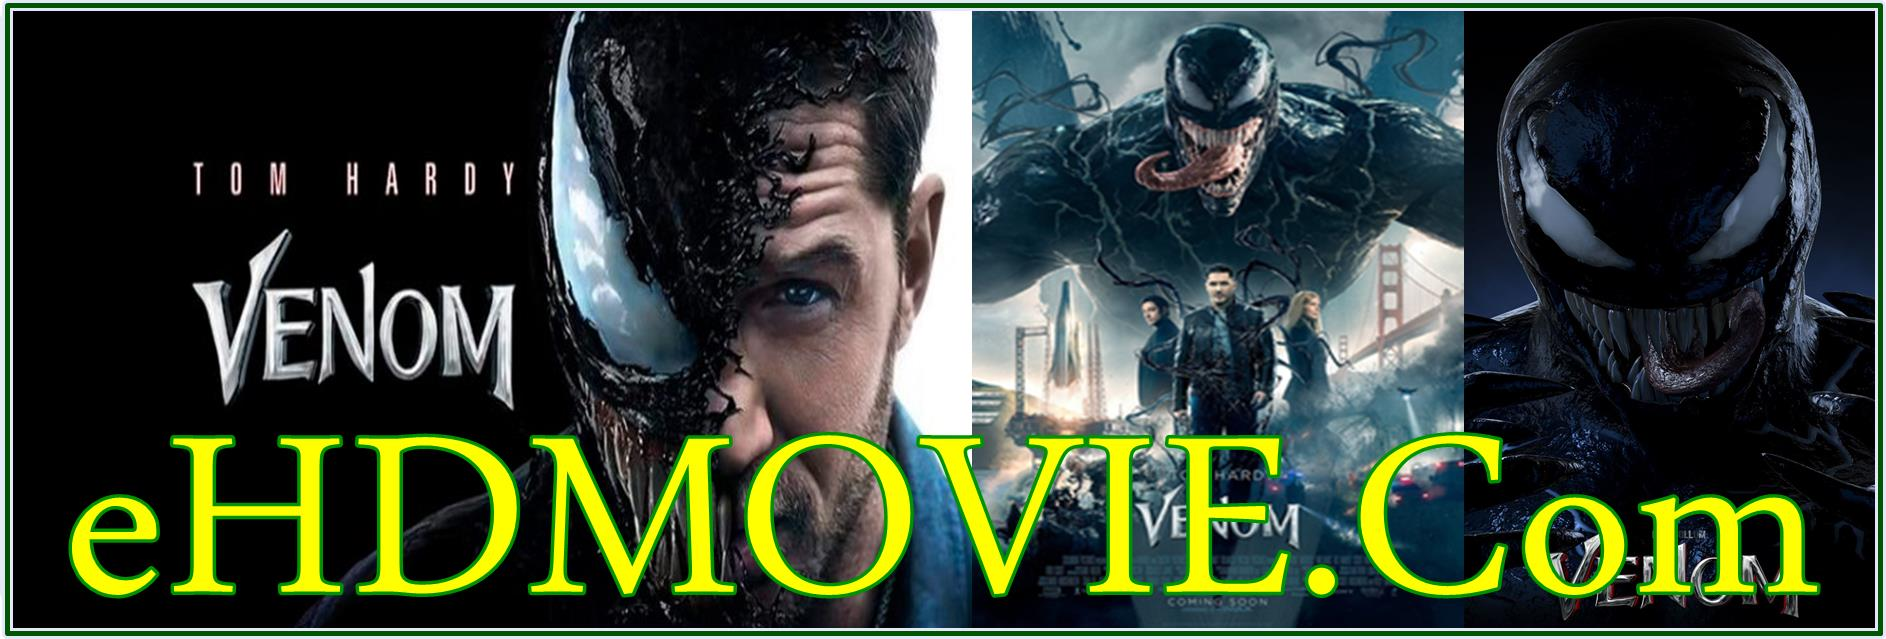 Venom 2018 Full Movie Dual Audio [Hindi – English] 1080p - 720p - HEVC - 480p ORG WEB-DL 350MB - 500MB - 1GB - 2.3GB ESubs Free Download